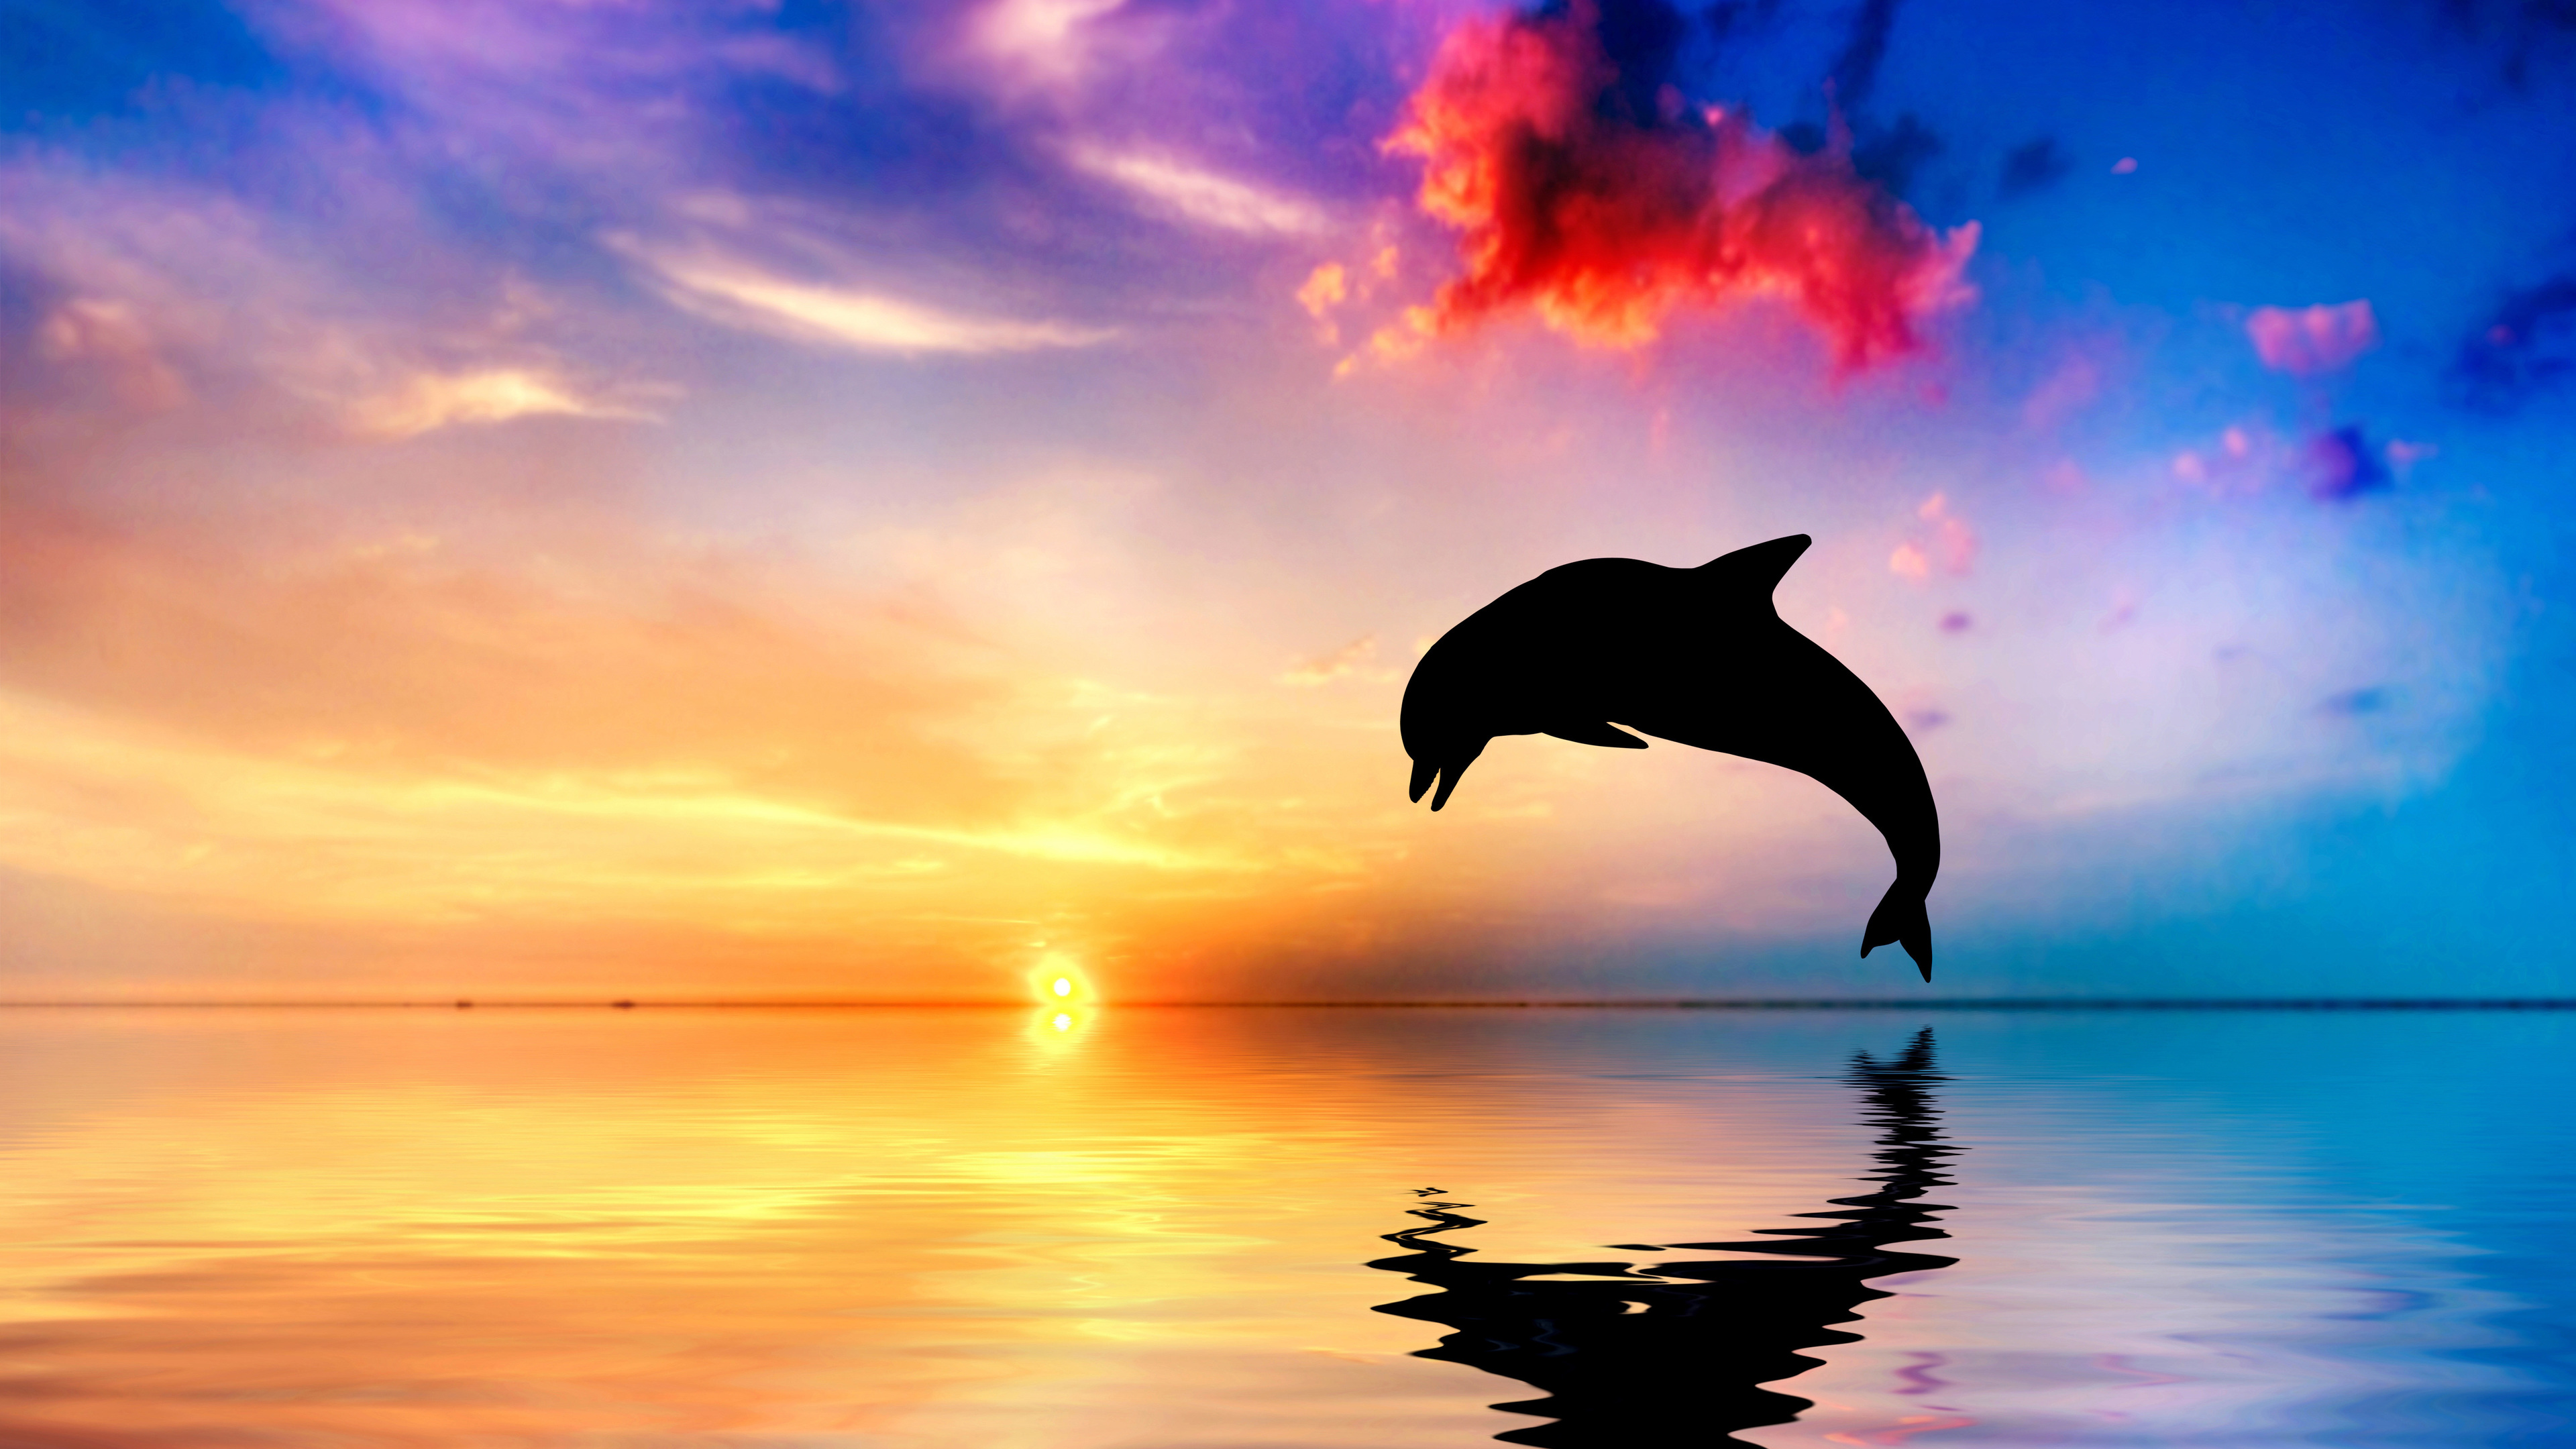 dolphin jumping out of water sunset view 4k 1542238884 - Dolphin Jumping Out Of Water Sunset View 4k - sunset wallpapers, ocean wallpapers, jump wallpapers, hd-wallpapers, fish wallpapers, dolphin wallpapers, 4k-wallpapers